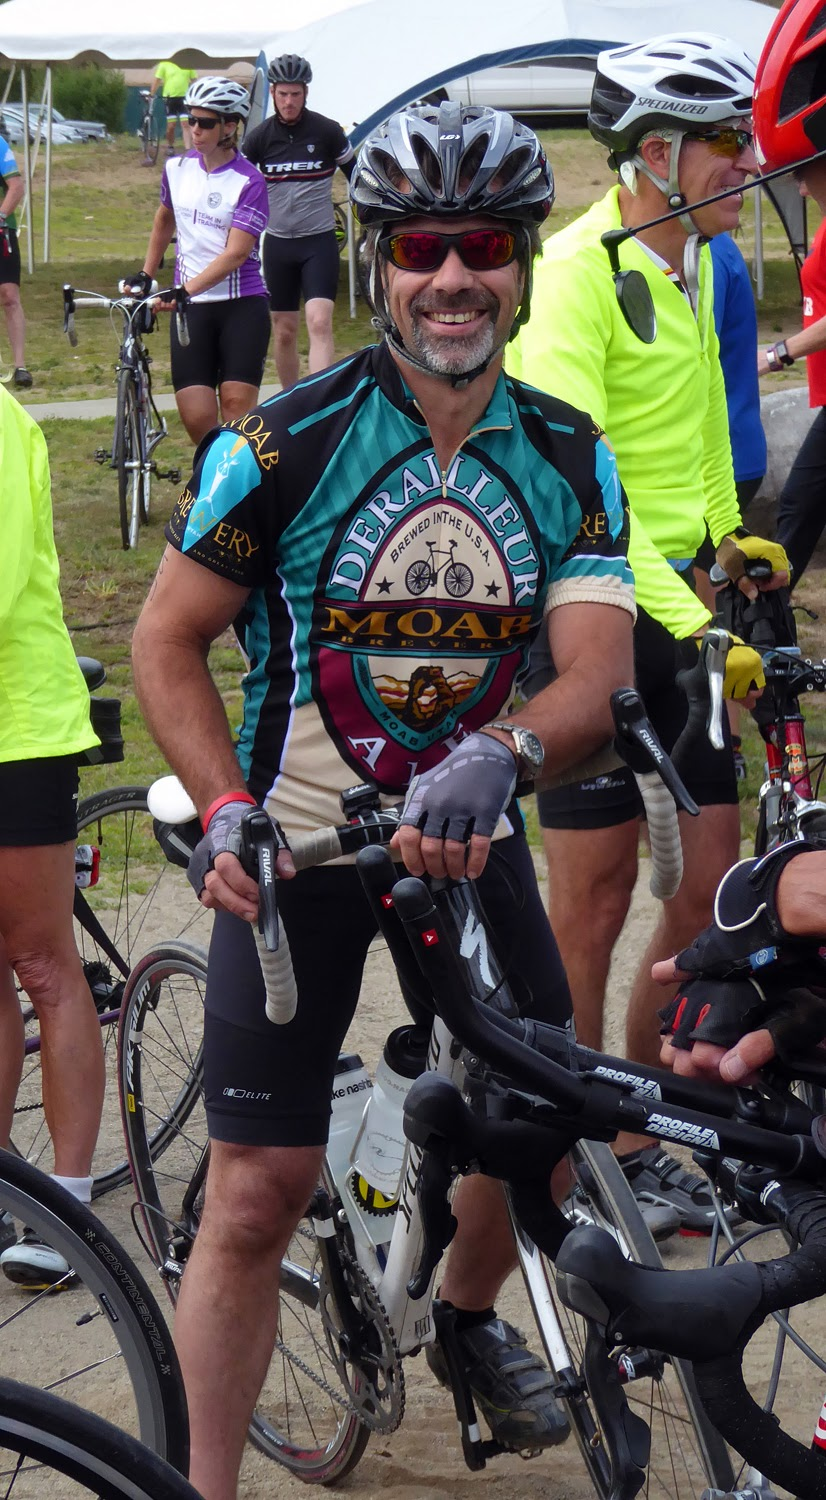 Steve Goldstein of Watervliet gets ready to start the 2016 Ididaride at Ski Bowl Park in North Creek.   Copyright by Dave Kraus/ Krausgrafik.com